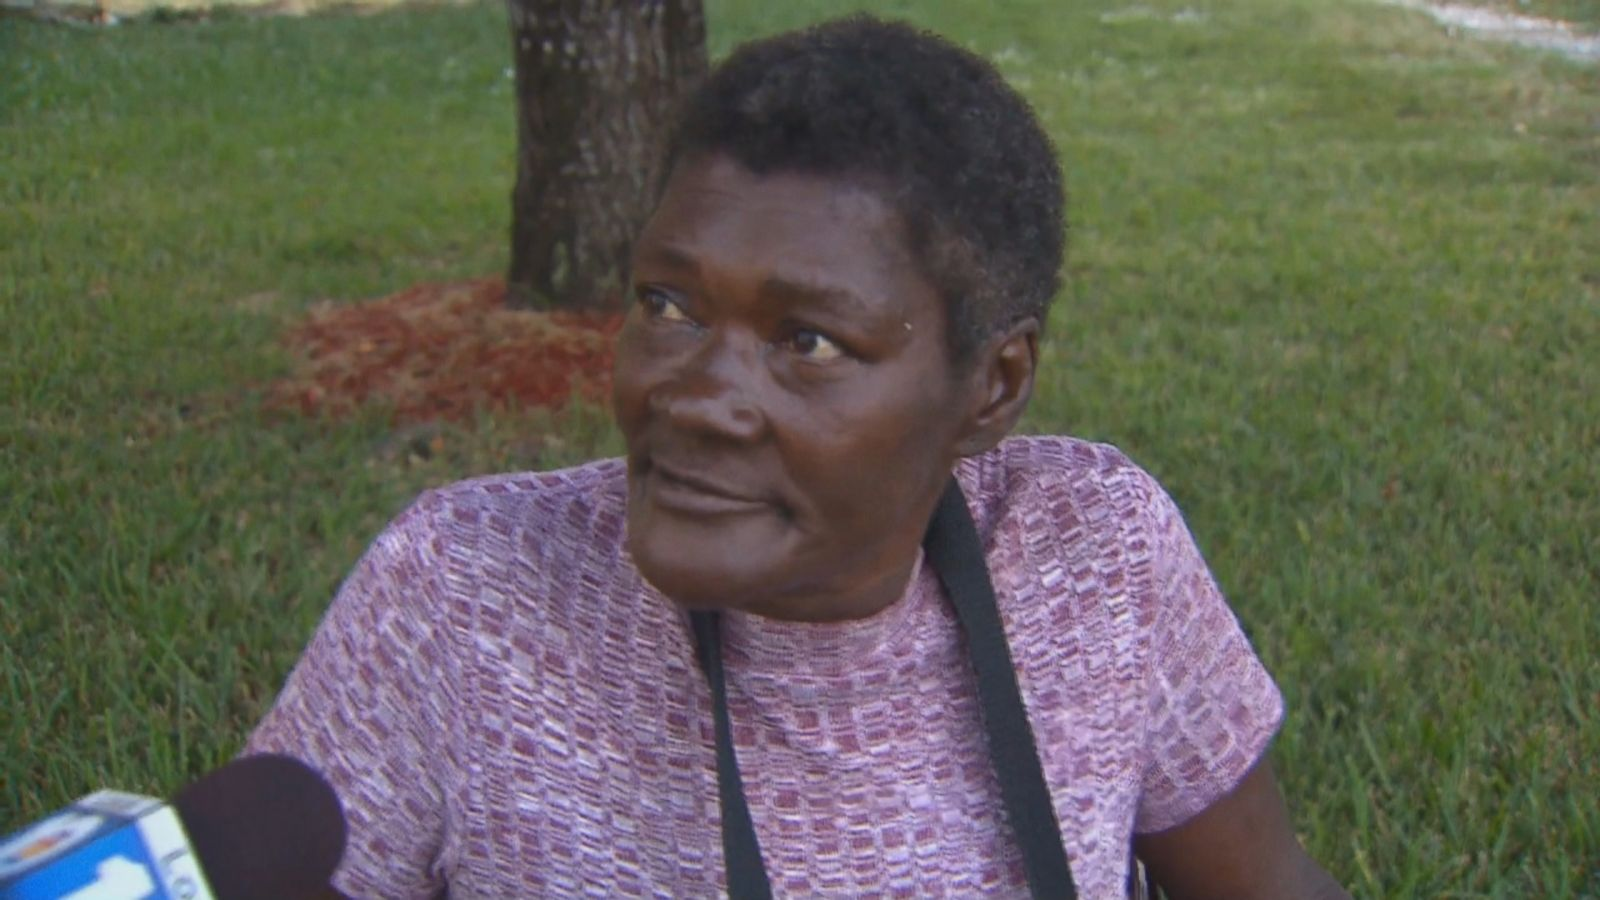 VIDEO: Mary Brown says she's still recovering from her arrest by Miami-Dade police officers for trespassing.